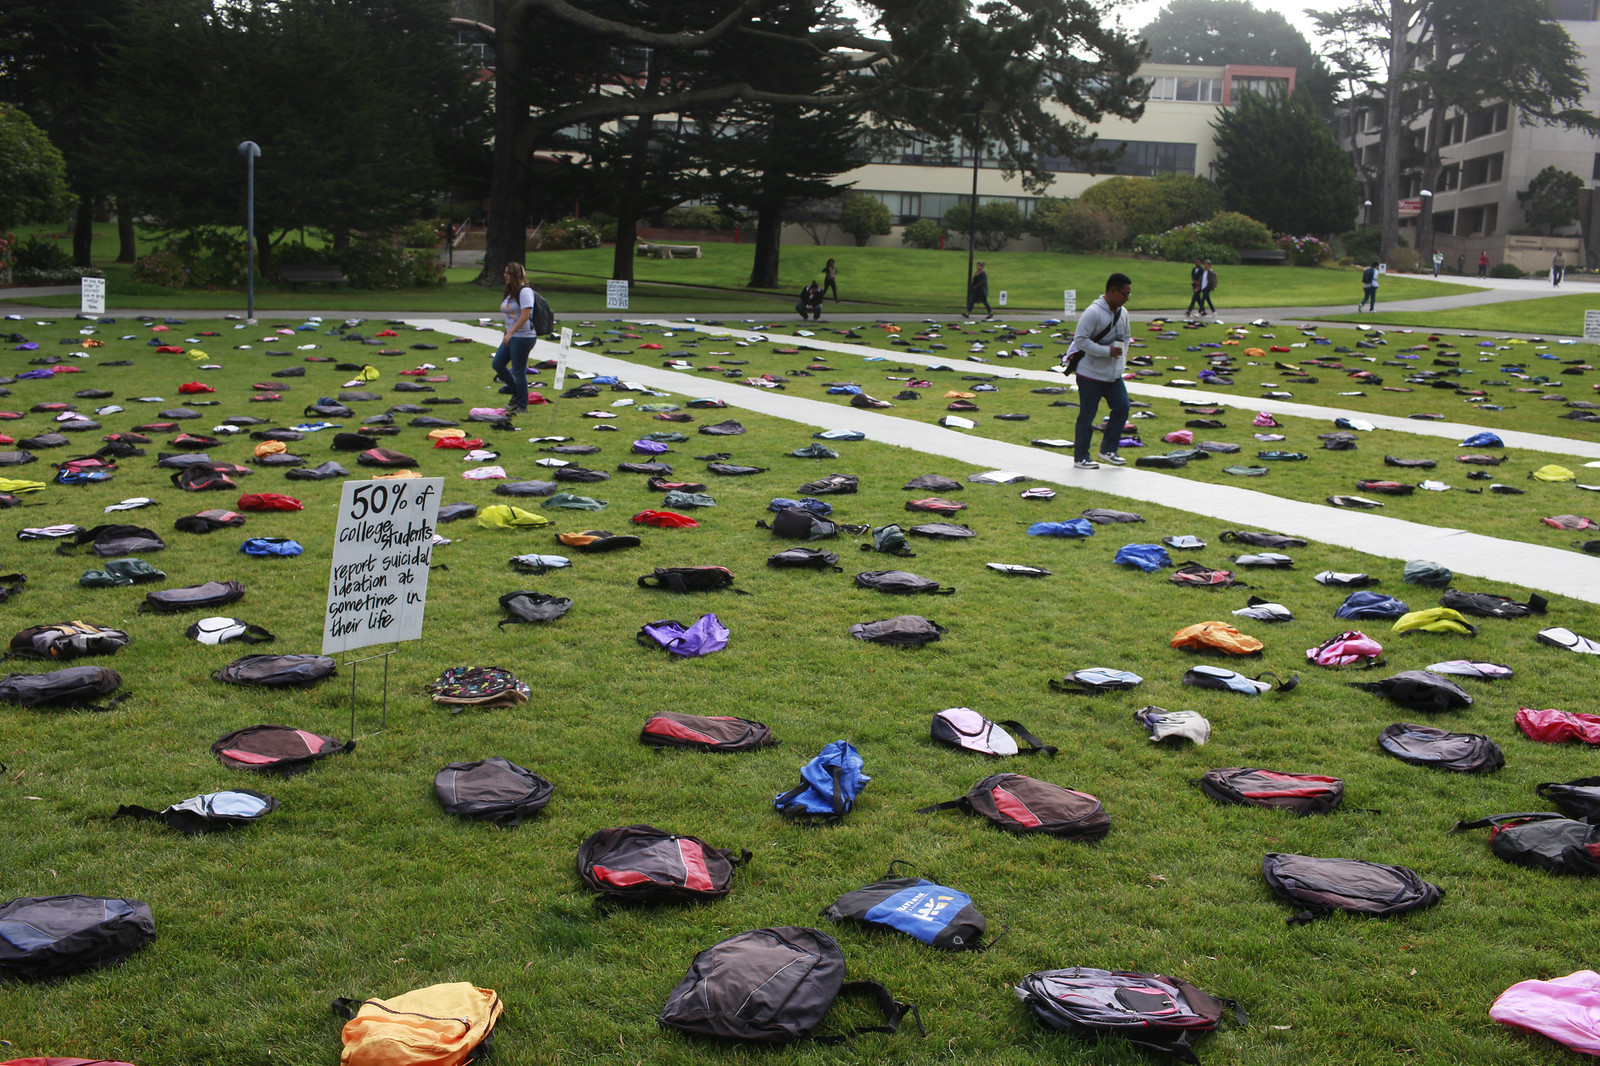 The lawn in the Quad is filled with 1100 backpacks to represent the number of college students who committed suicide in 2012, during the suicide prevention event organized by Send Silence Packing, an exhibit which travels to California college campuses during suicide prevention month. Photo by Mike Hendrickson / Xpress